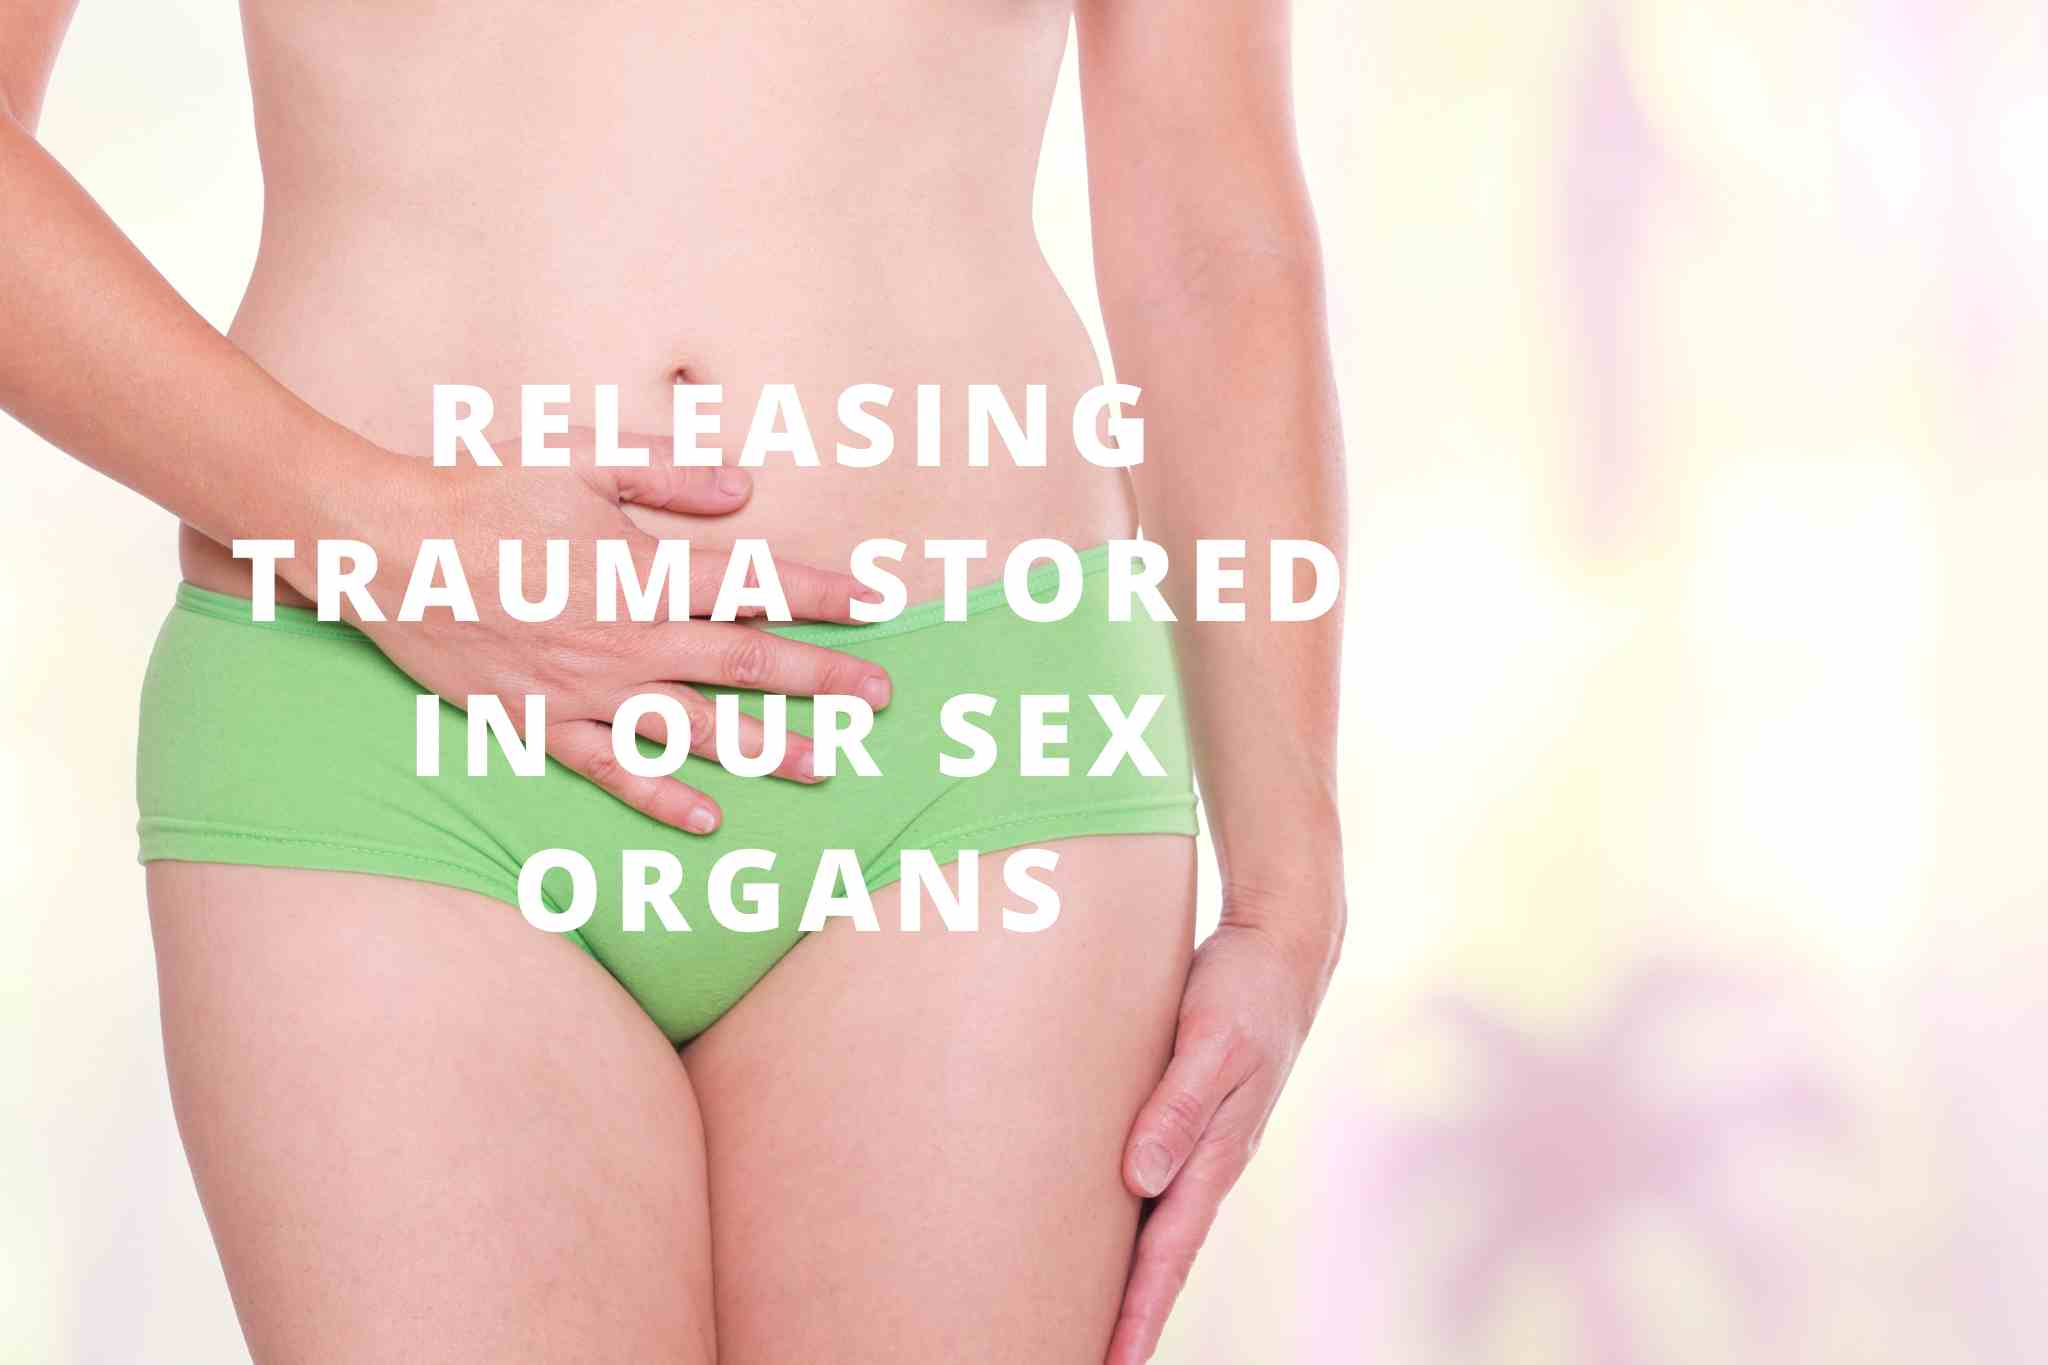 Releasing Trauma Stored in our Sex Organs